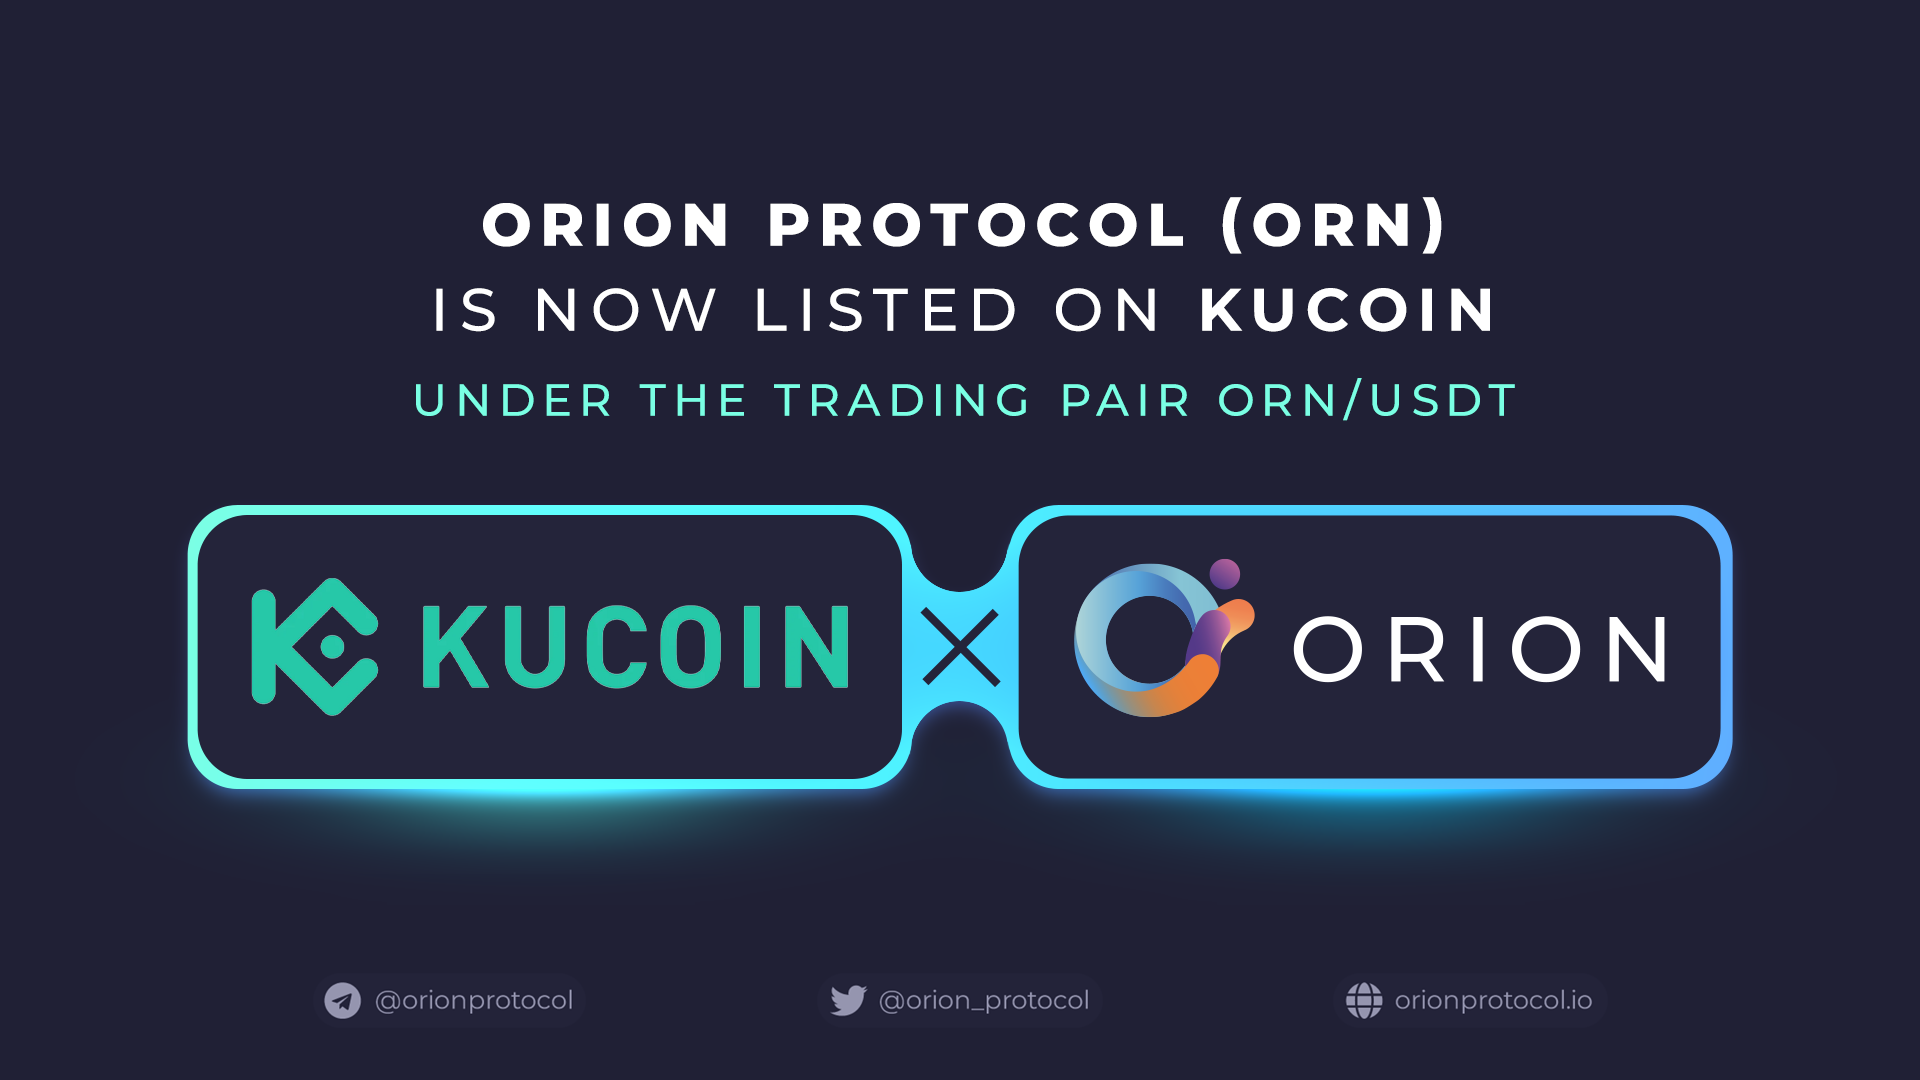 ORN's Listing on KuCoin